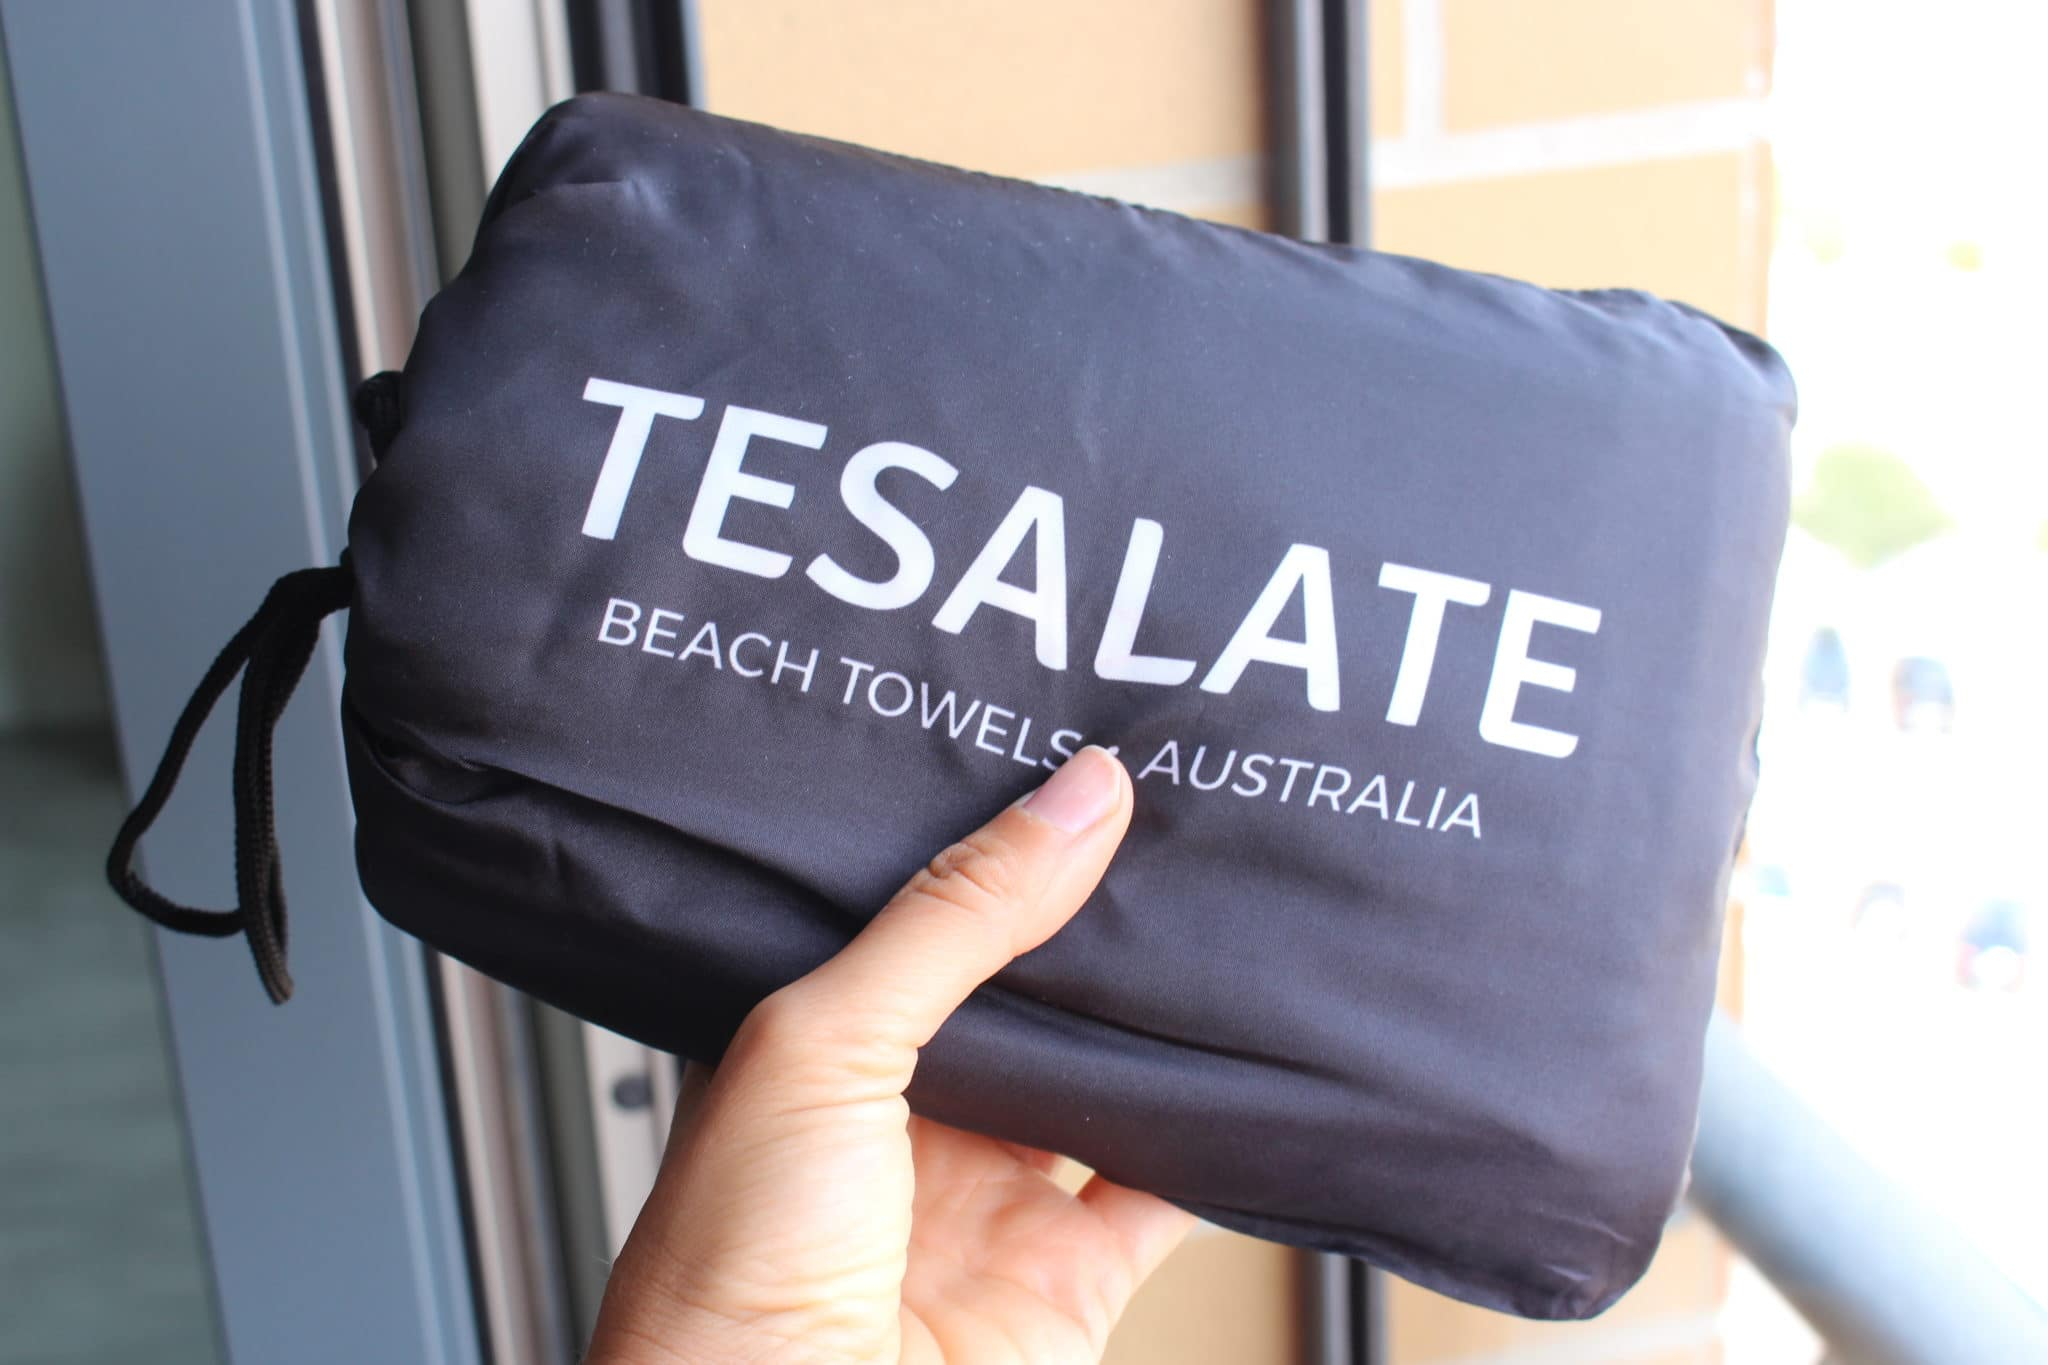 Bag where the towels come from Tesalate